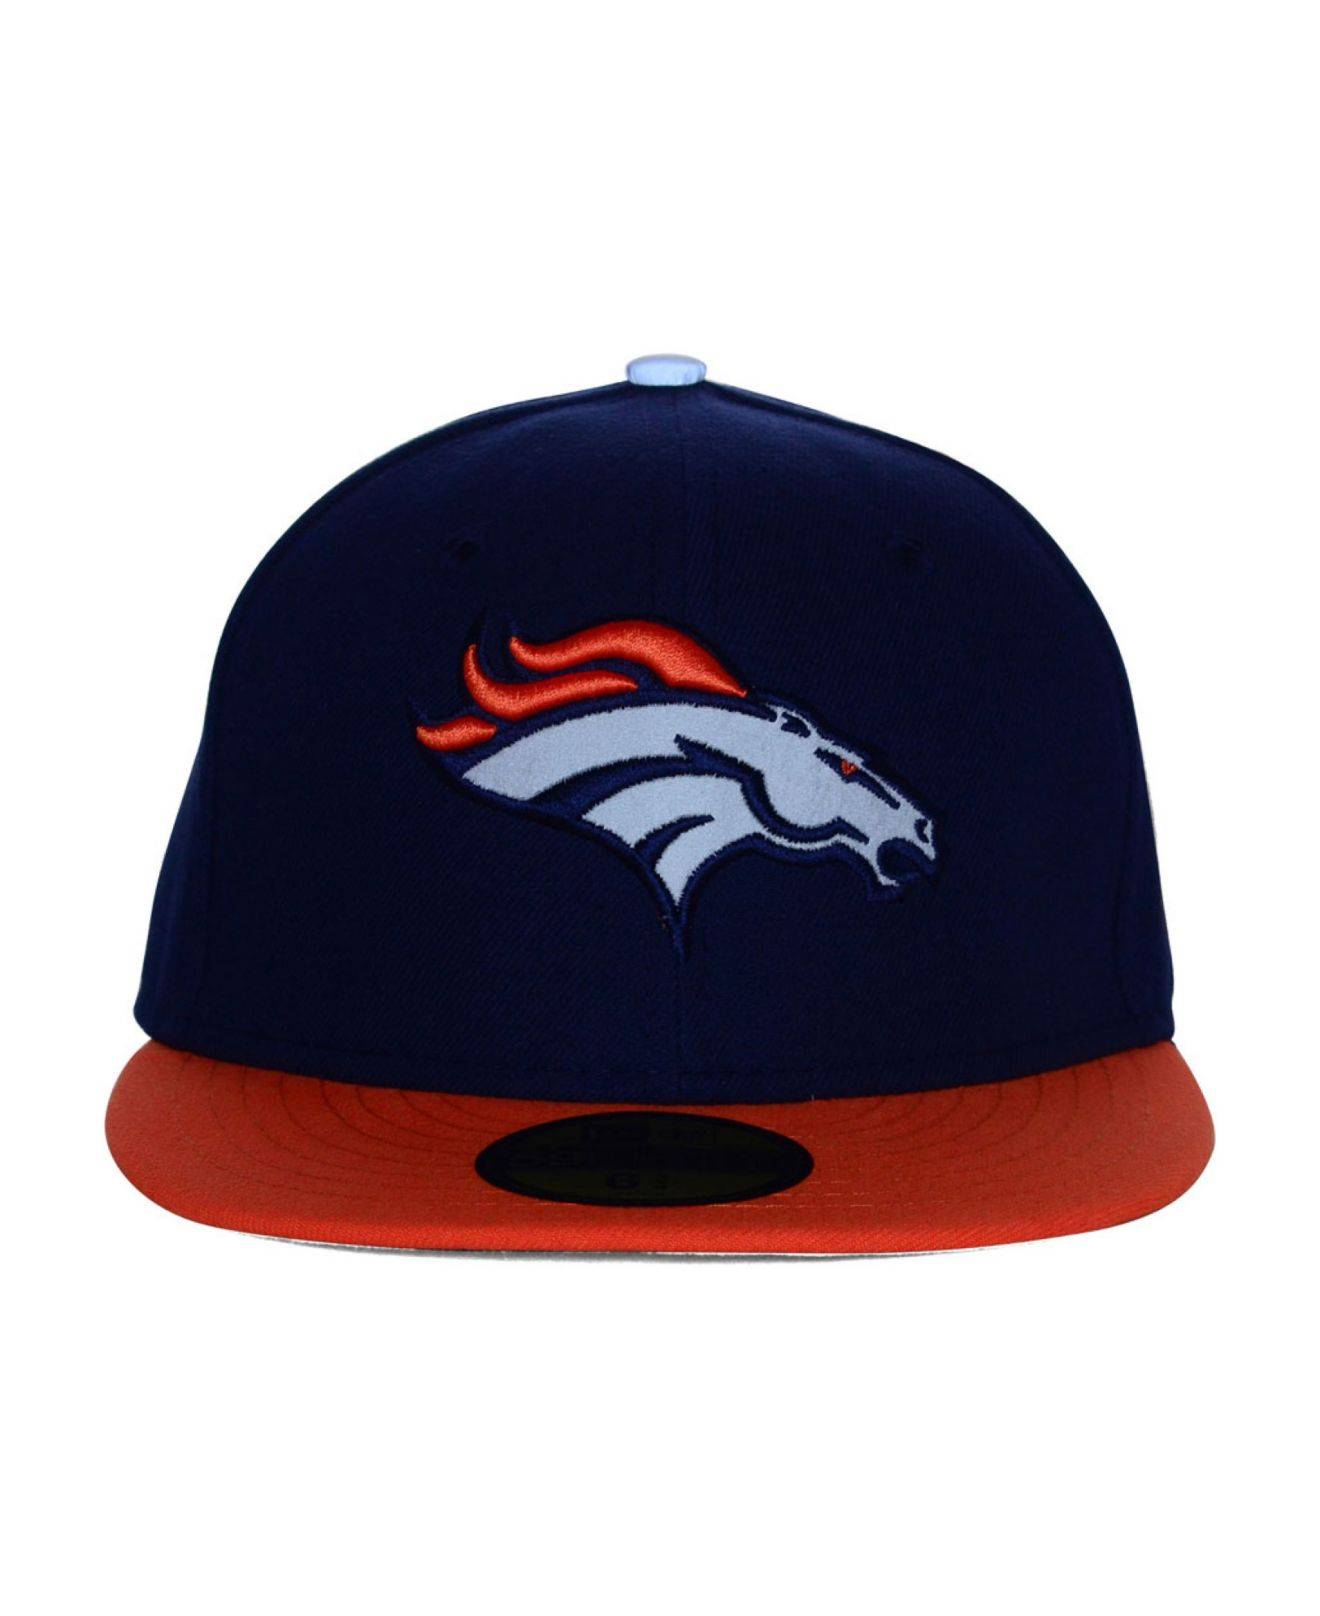 7478b0e7c Lyst - Ktz Denver Broncos Thanksgiving On Field Reflective 59Fifty ...